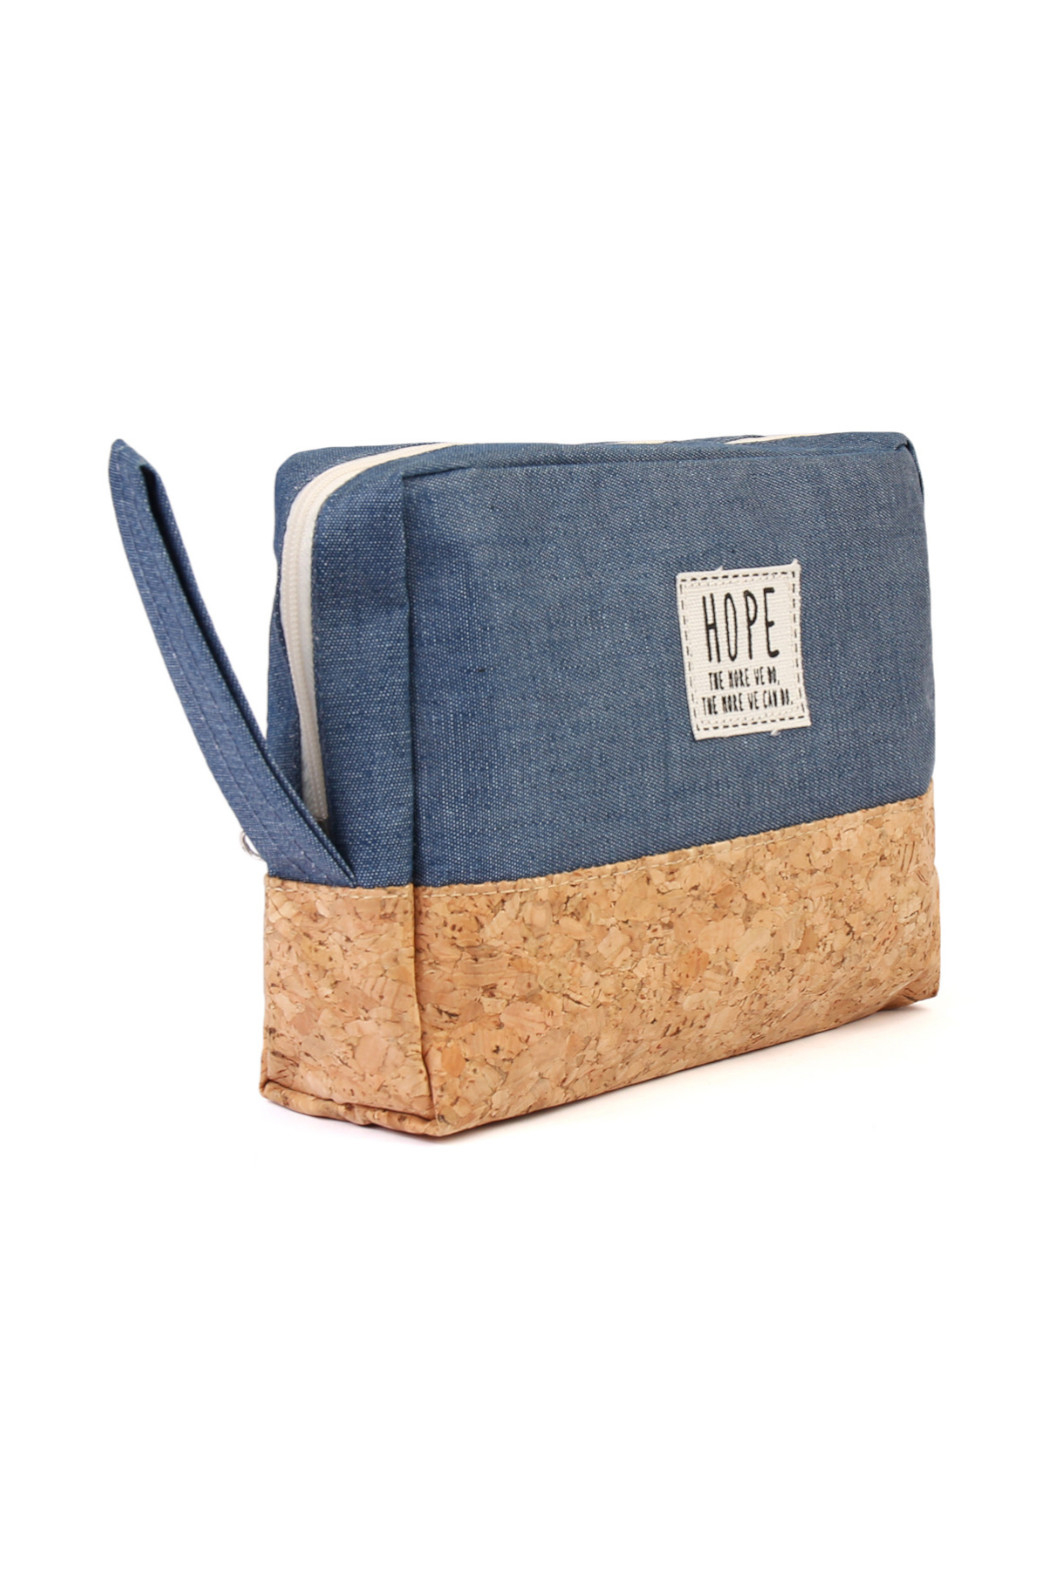 TPO HOPE Blue Canvas Cosmetic Pouch - Front Full Image